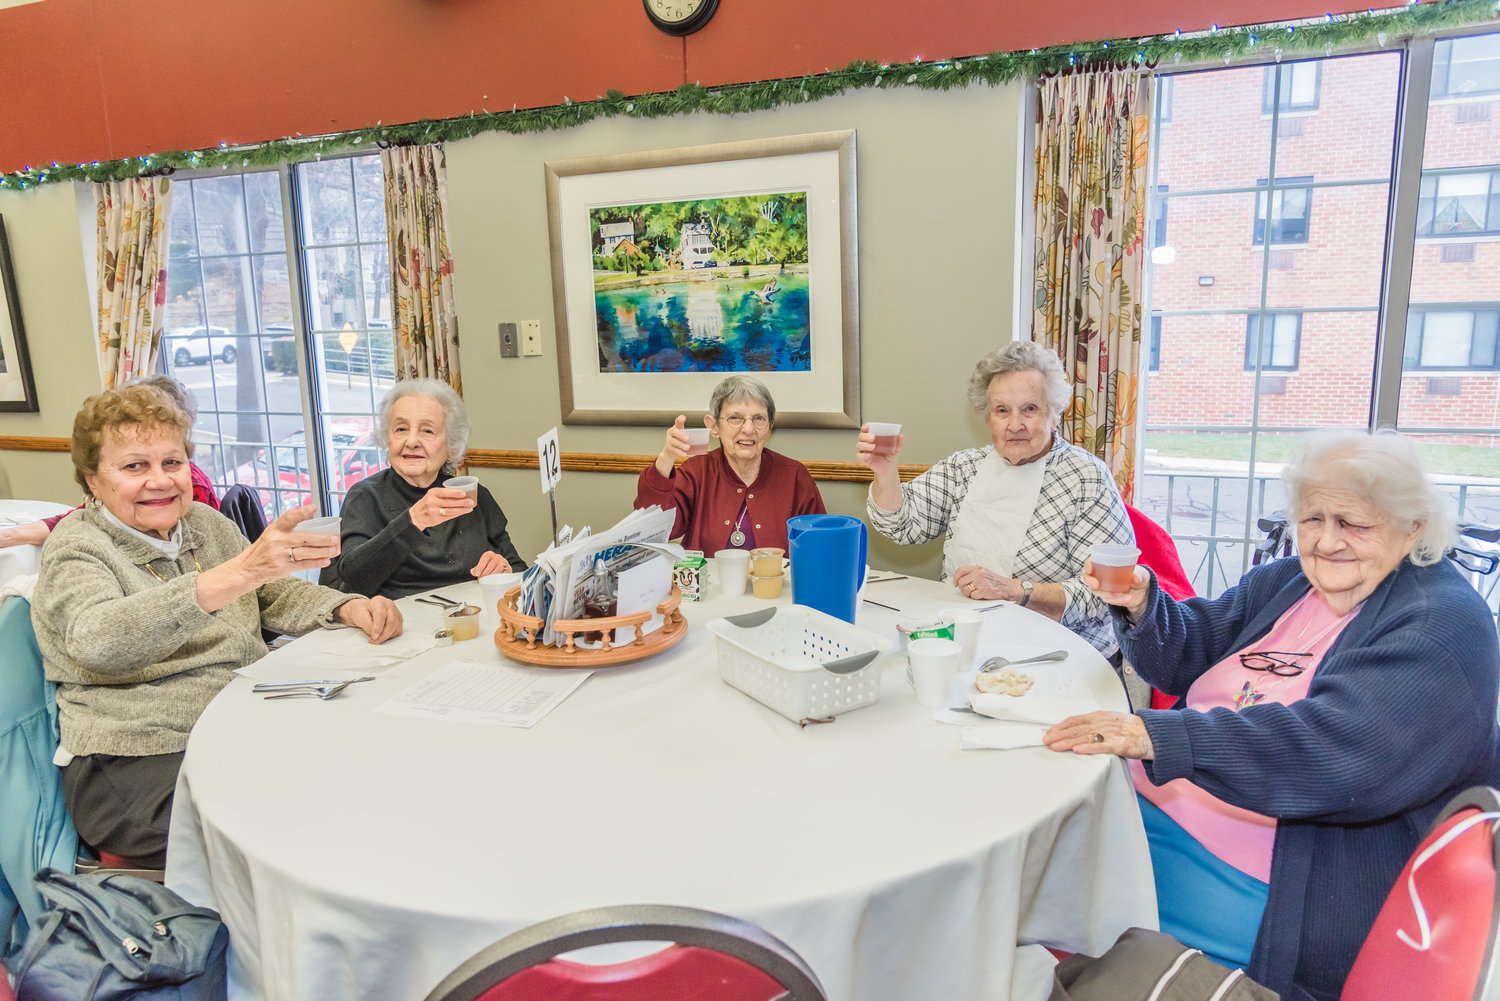 A group of gal pals at the senior center made a toast to their lifelong friendship.